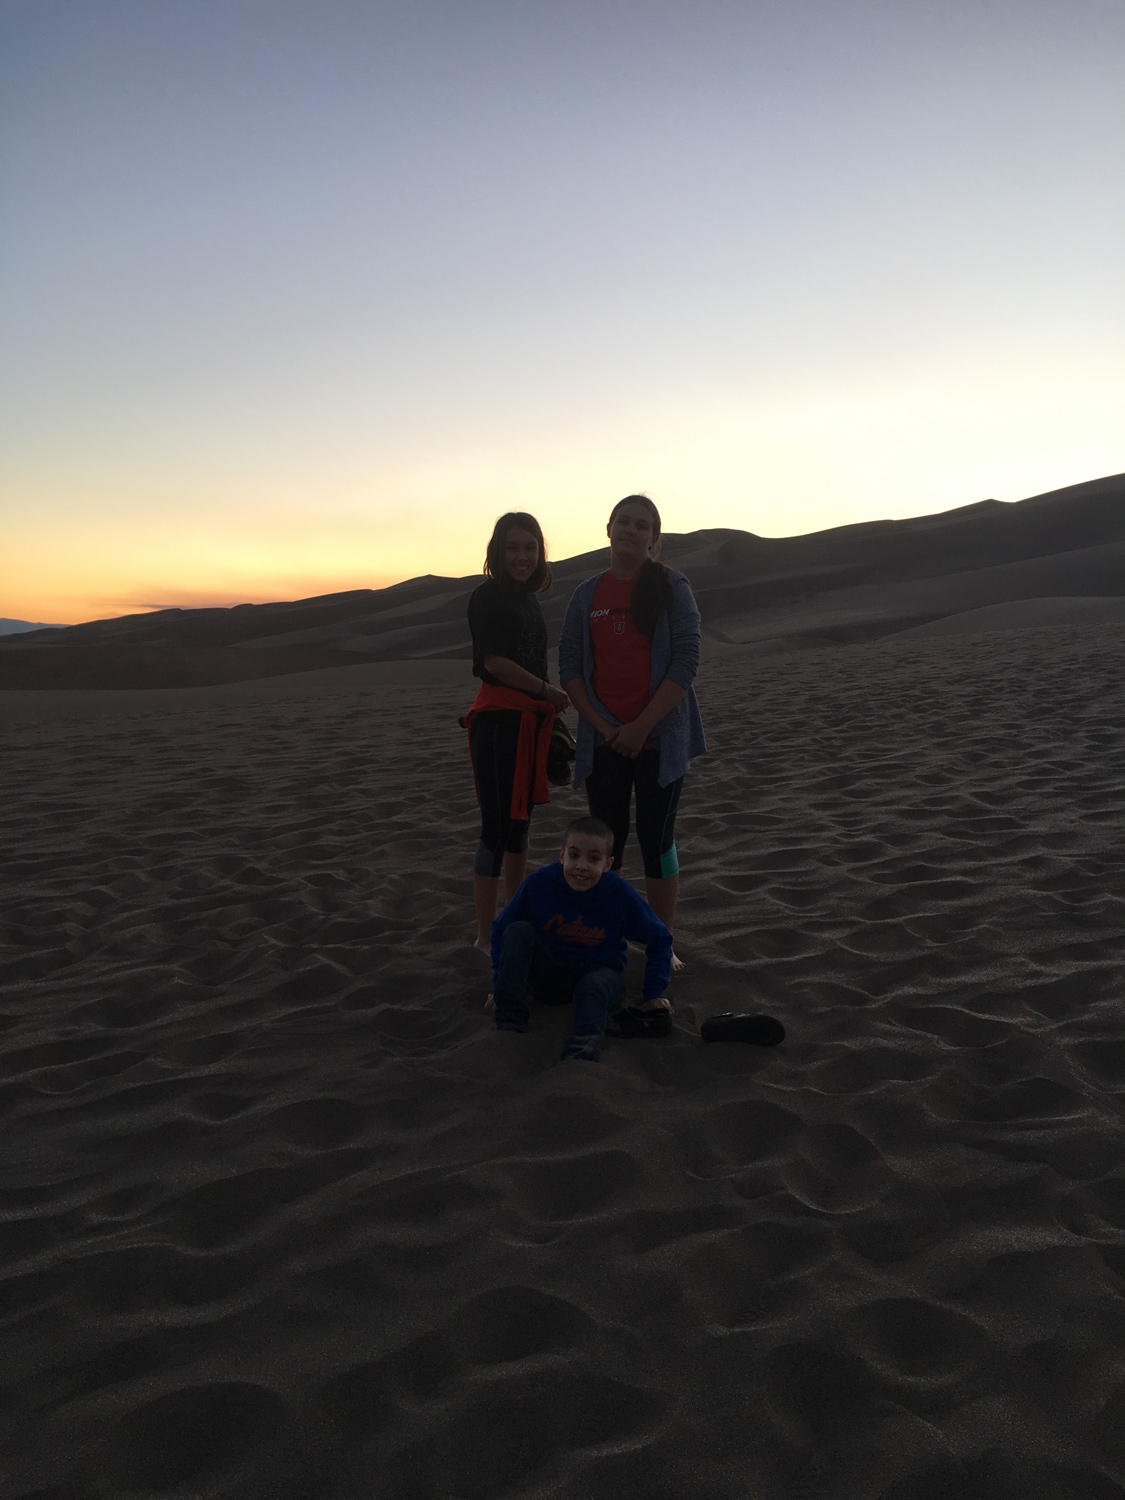 Evenings in June are a great time to explore the dunes. The temperature is very pleasant, and the crowds are very low!